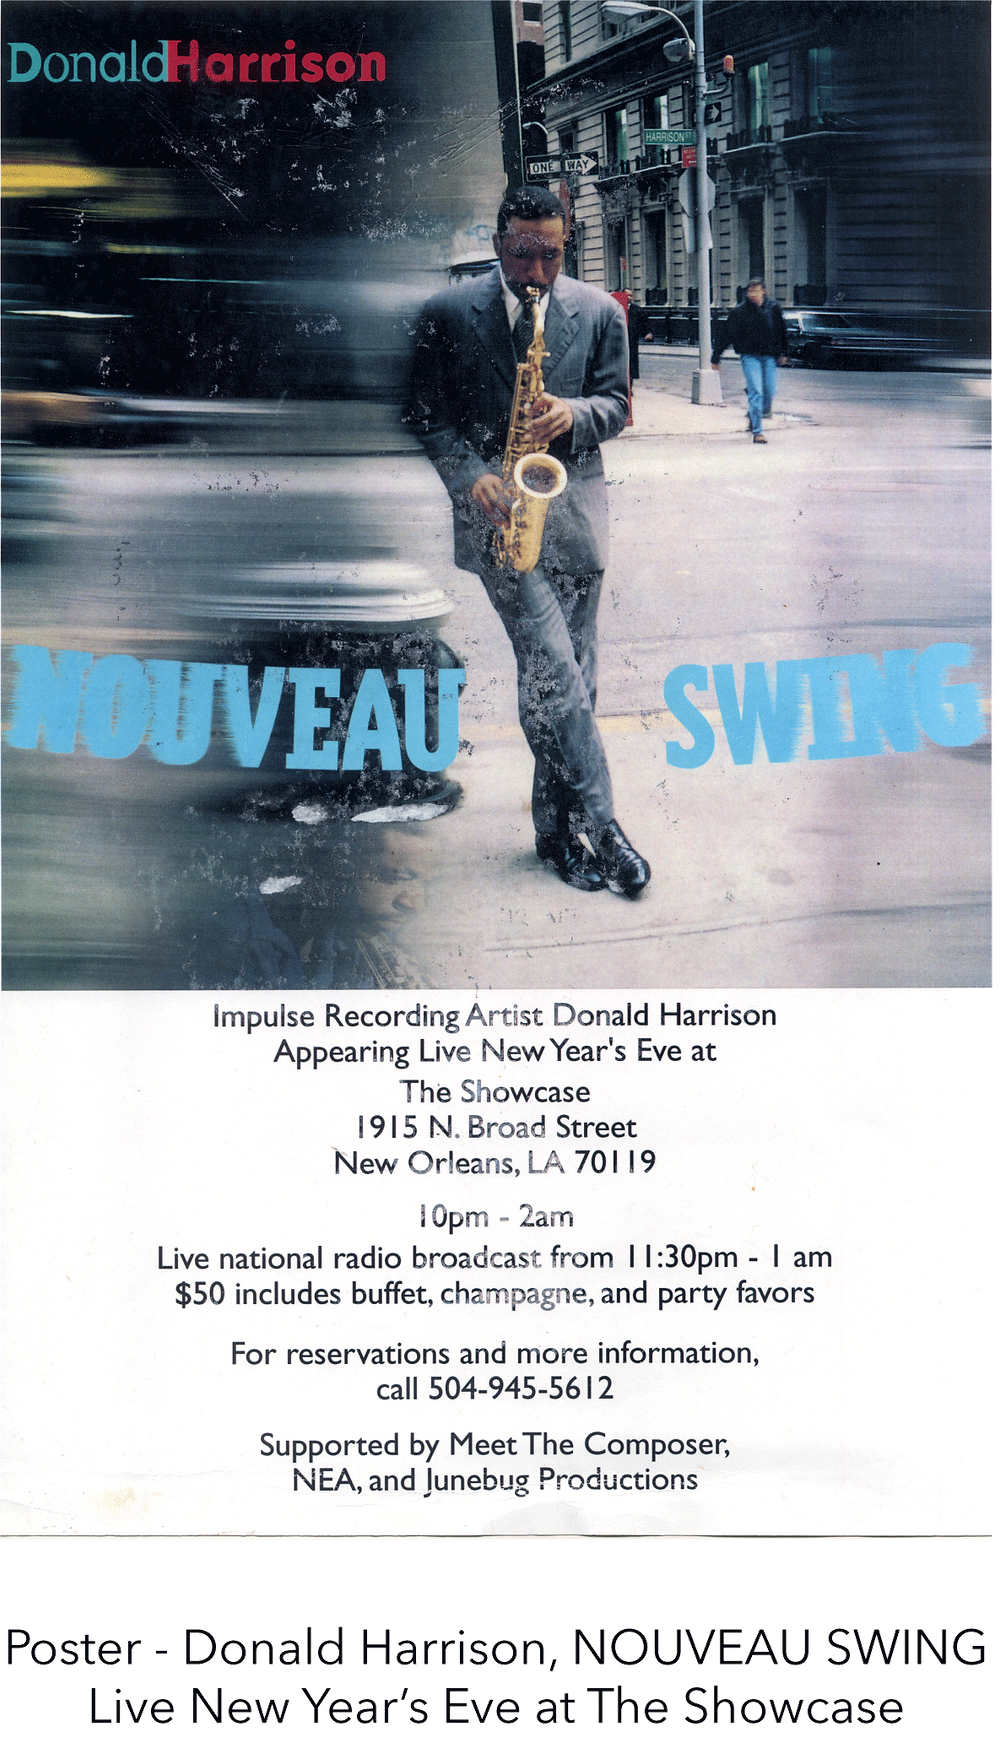 Poster - Donald Harrison, NOUVEAU SWING Live New Year's Eve at The Showcase